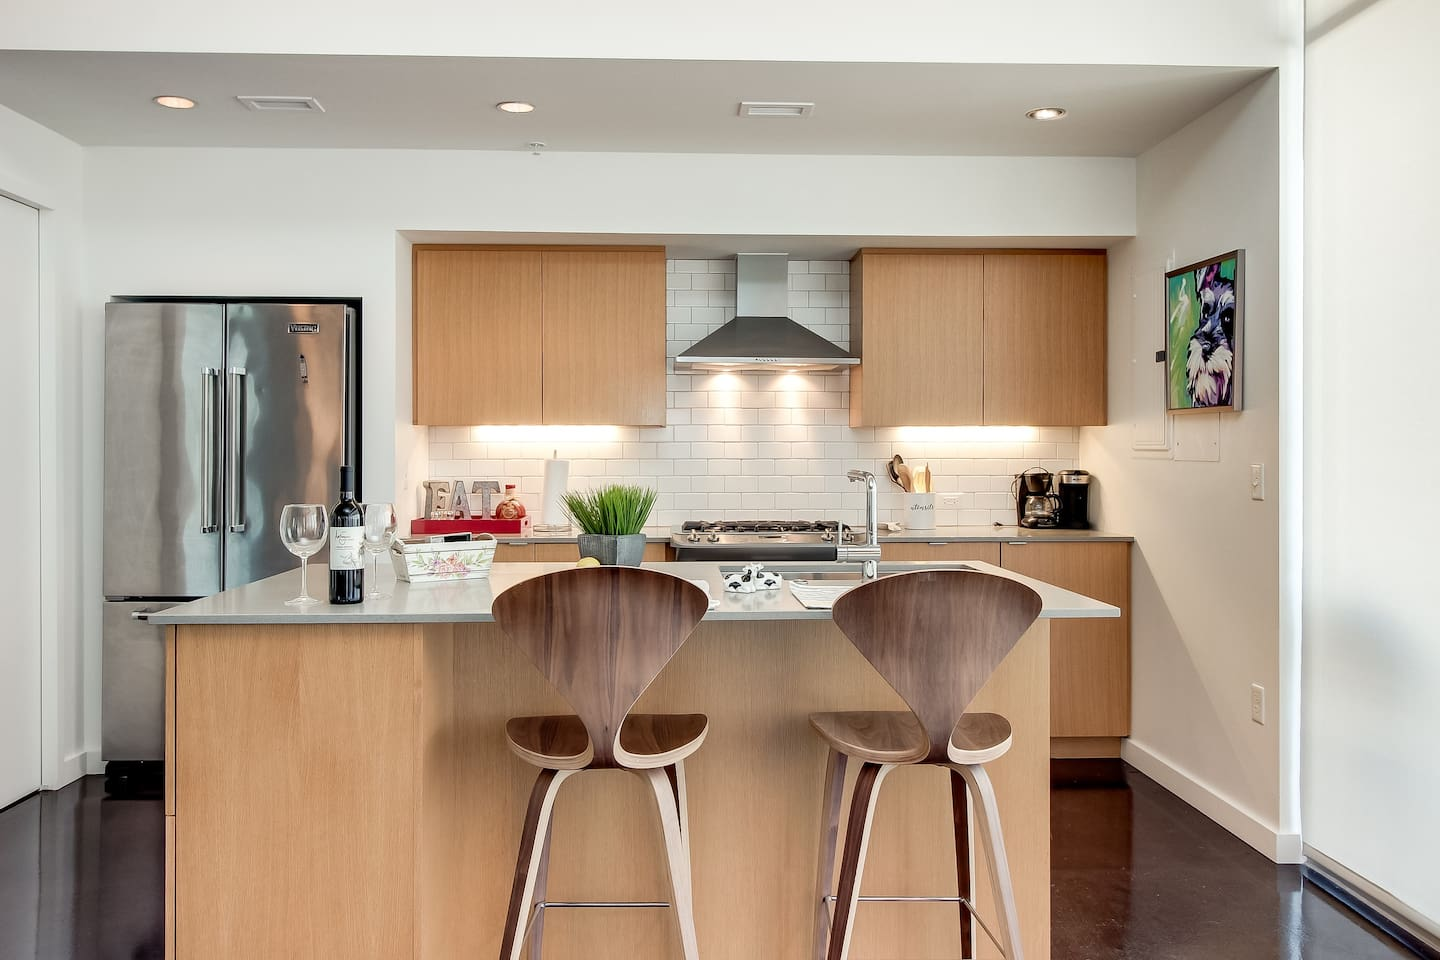 Clean kitchen with two counter stools